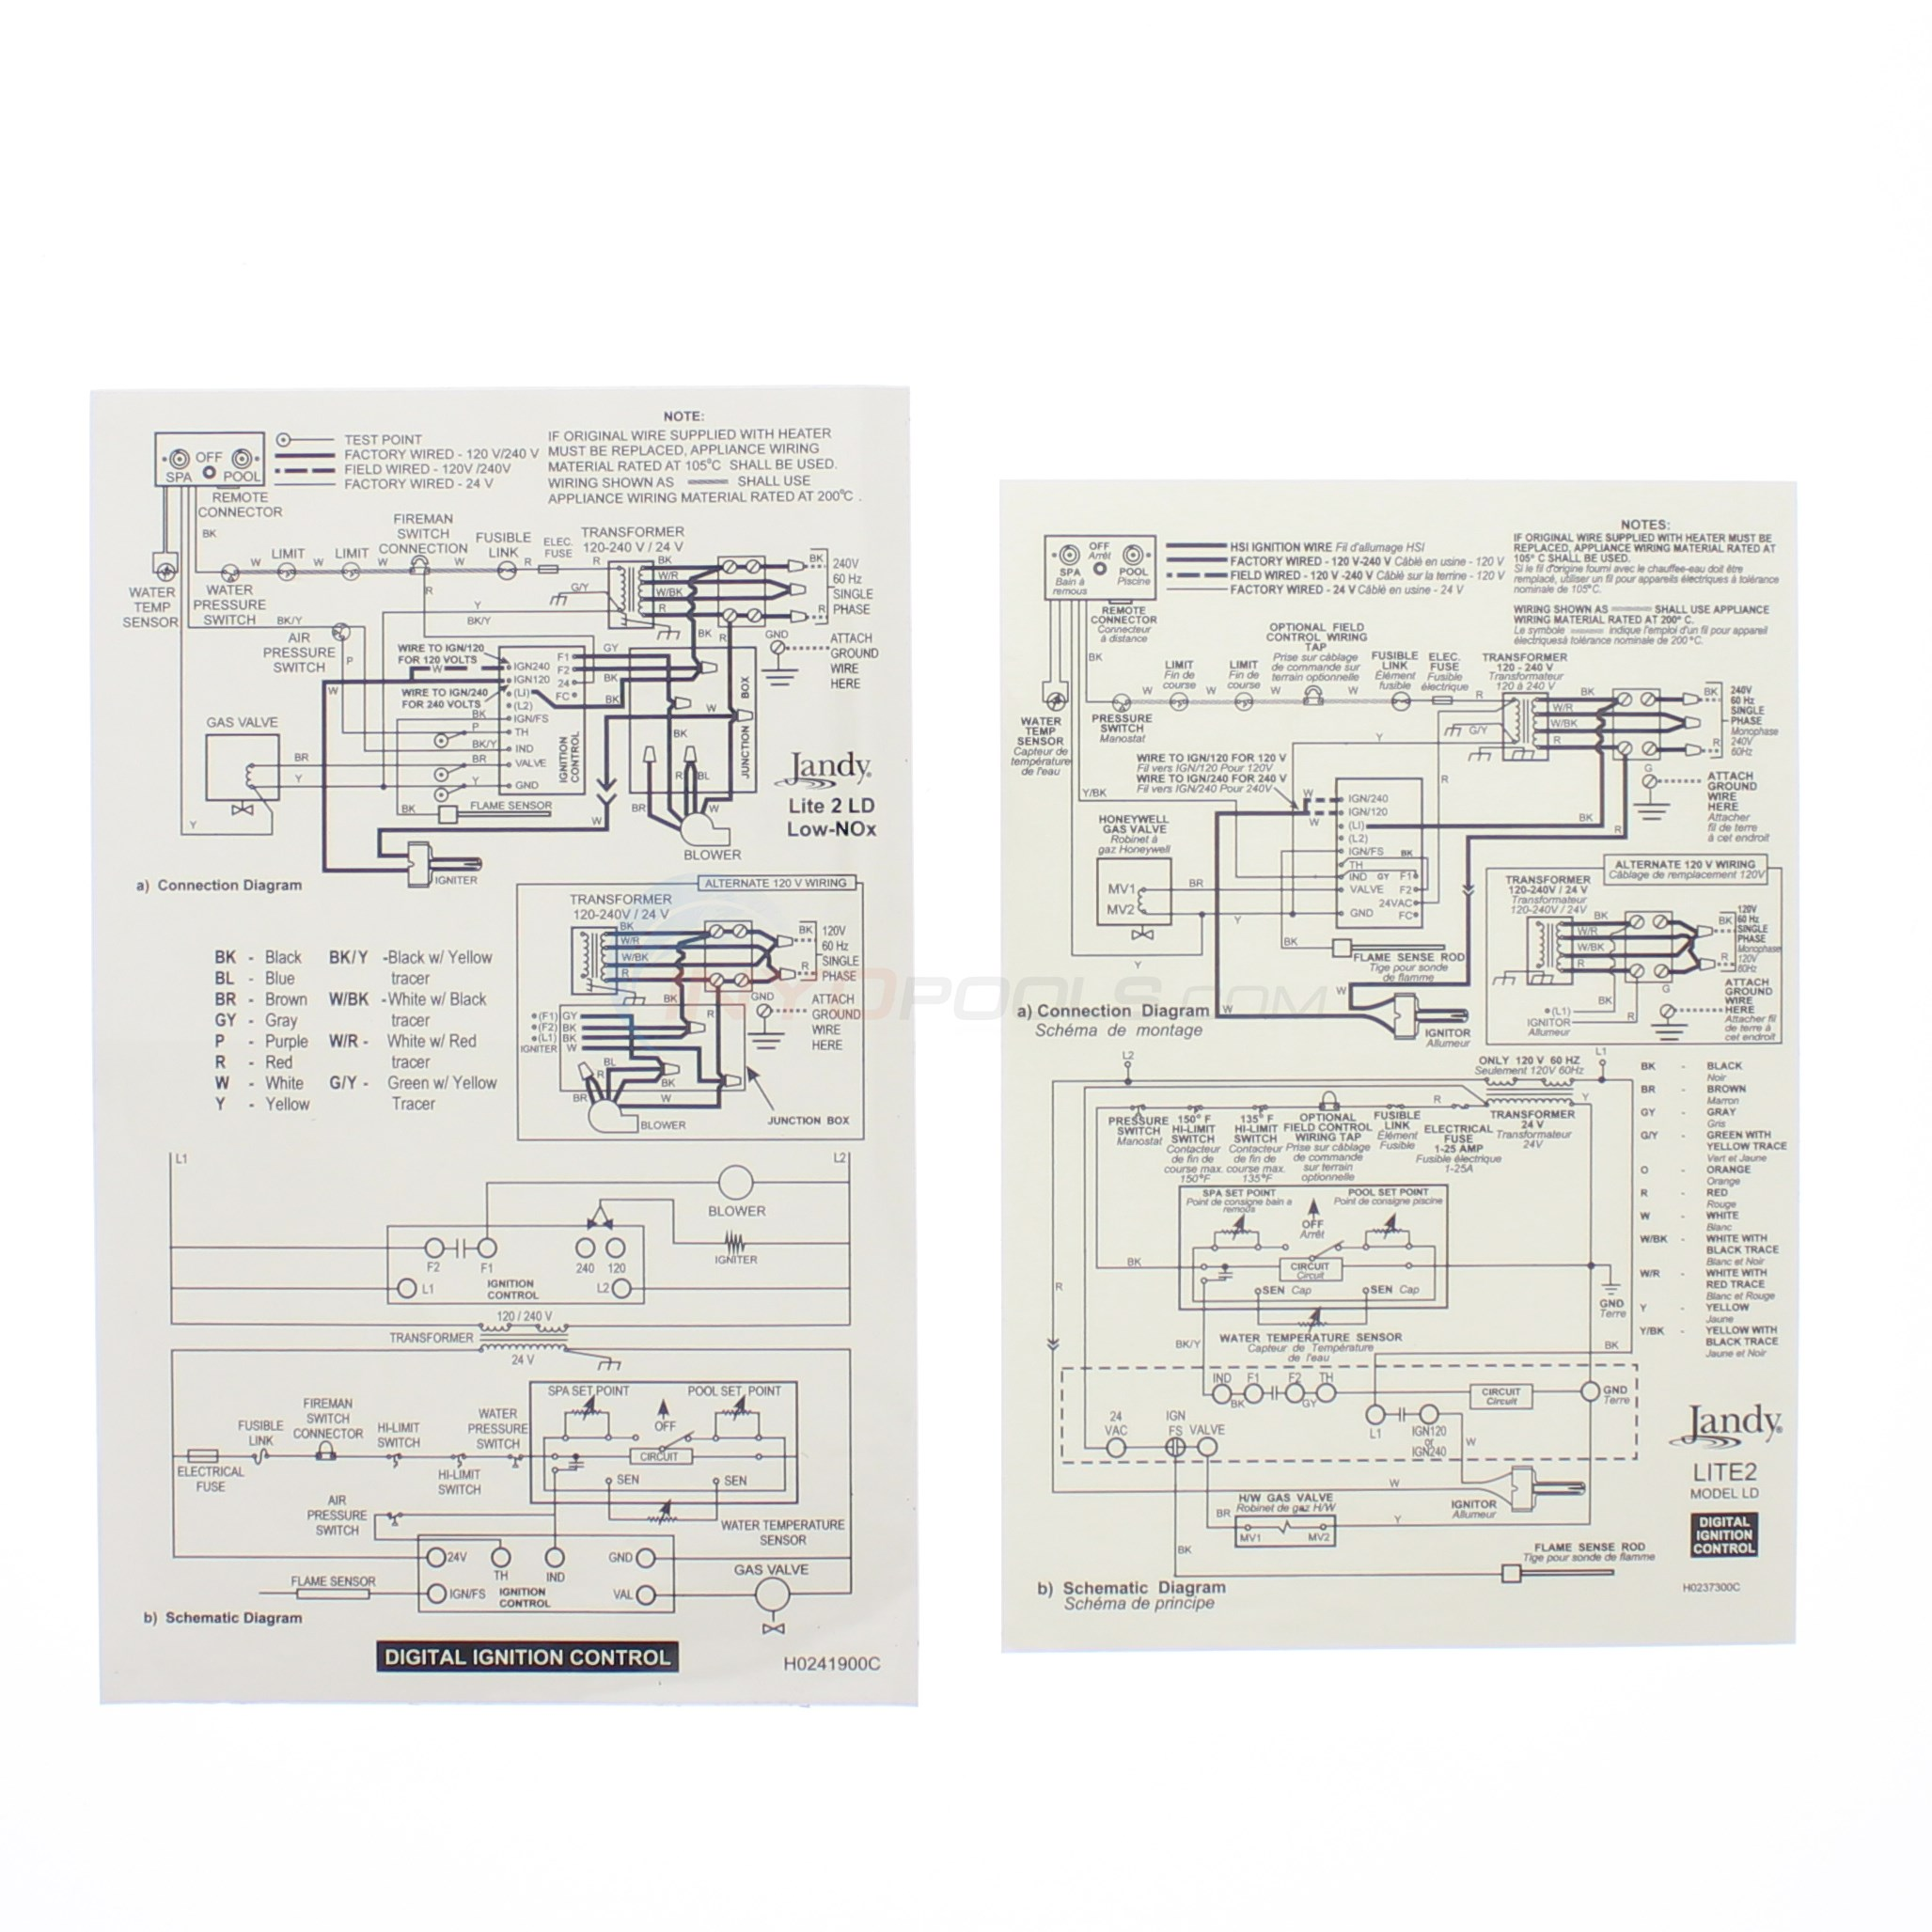 zodiac 6200 0301?format=jpg&scale=both&anchor=middlecenter&autorotate=true&mode=pad&width=650&height=650 zodiac ignition control assembly (r0408100) inyopools com fenwal ignition module wiring diagram at couponss.co